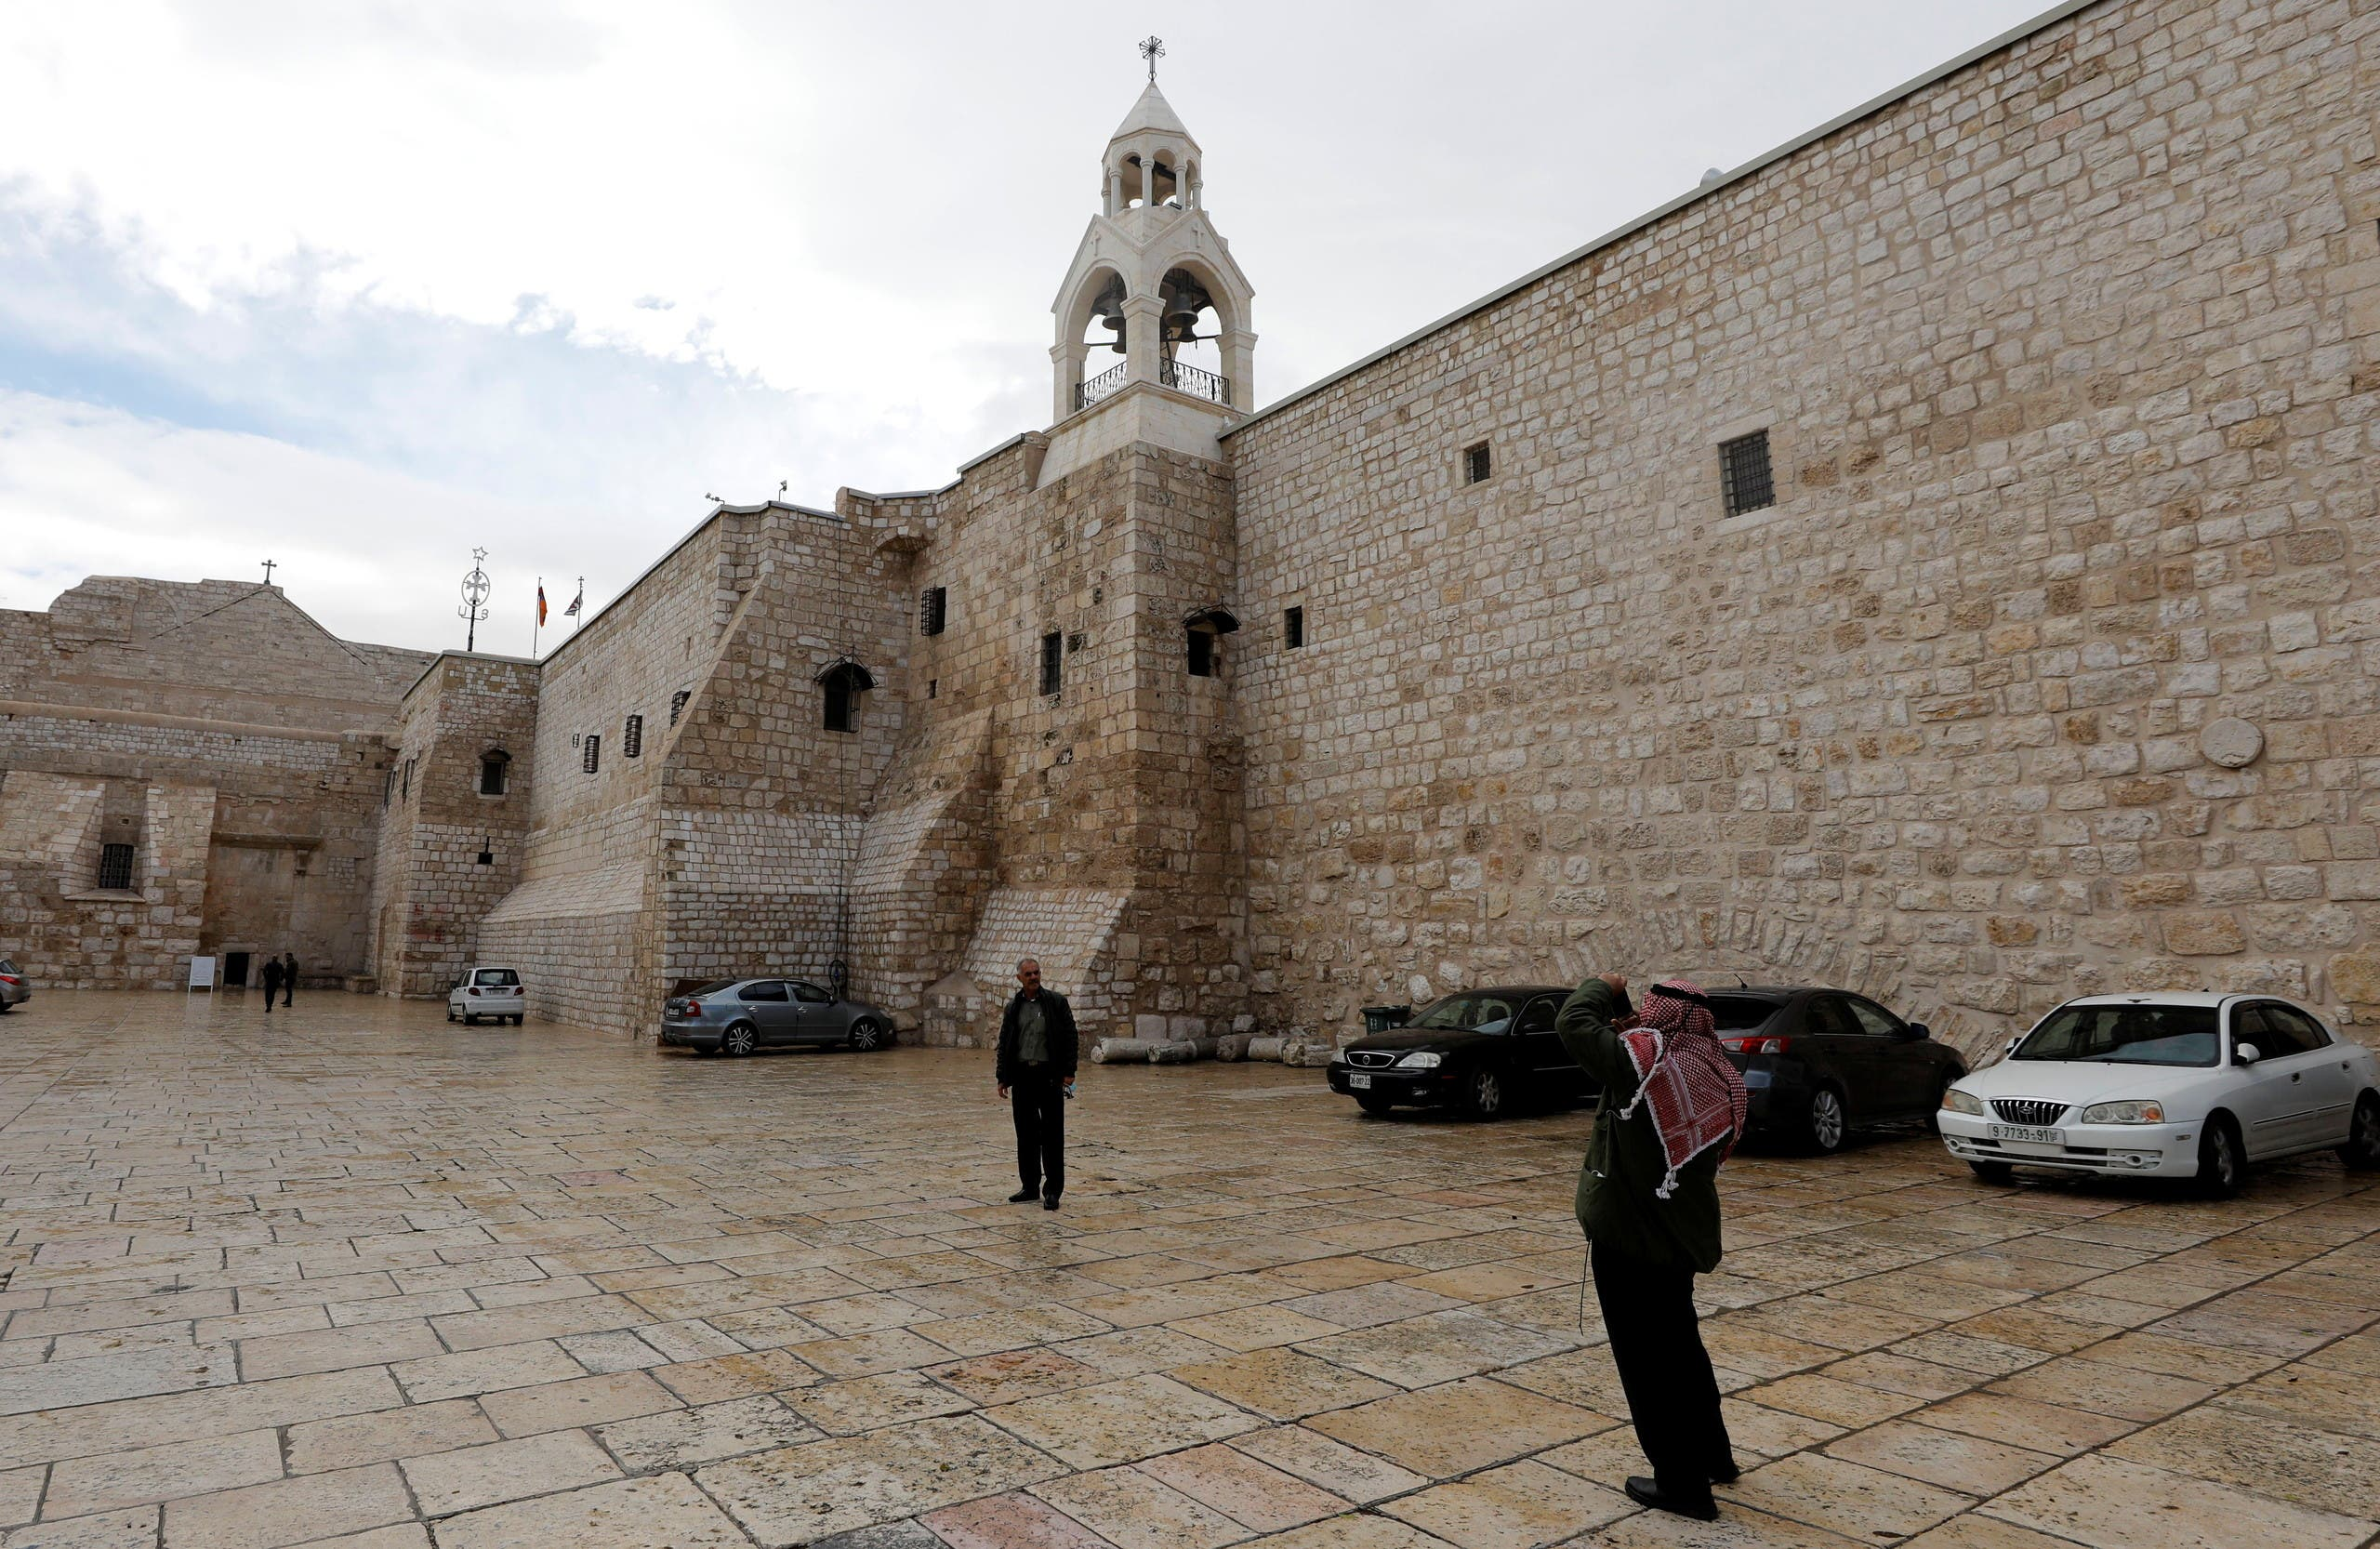 A Palestinian man poses for a picture outside the Church of the Nativity, amid the coronavirus disease (COVID-19) outbreak, in Bethlehem in the Israeli-occupied West Bank November 26, 2020. Picture taken November 26, 2020. (Reuters/Mussa Qawasma)